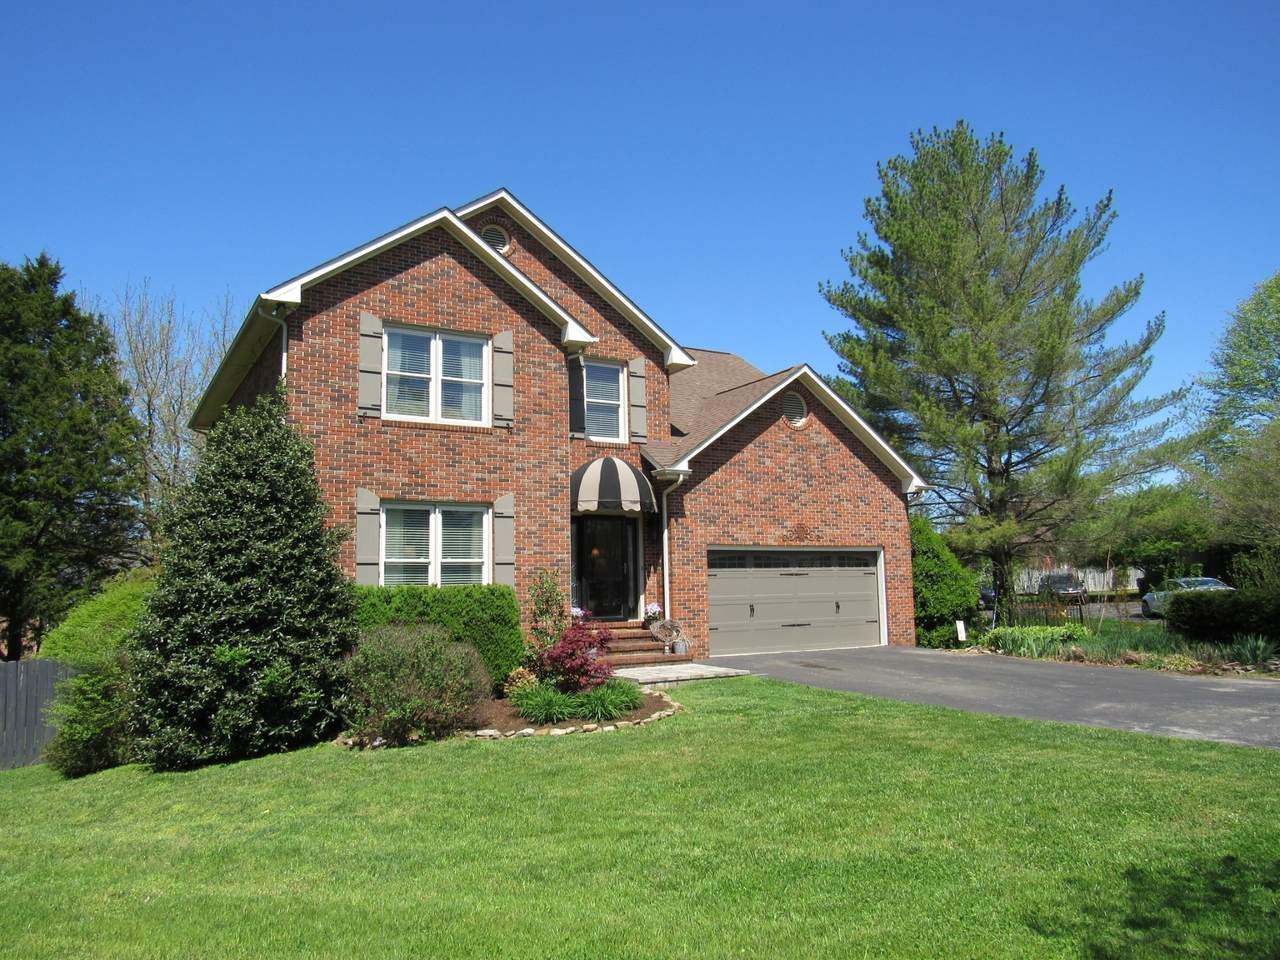 1075 Independence Ct - Photo 1